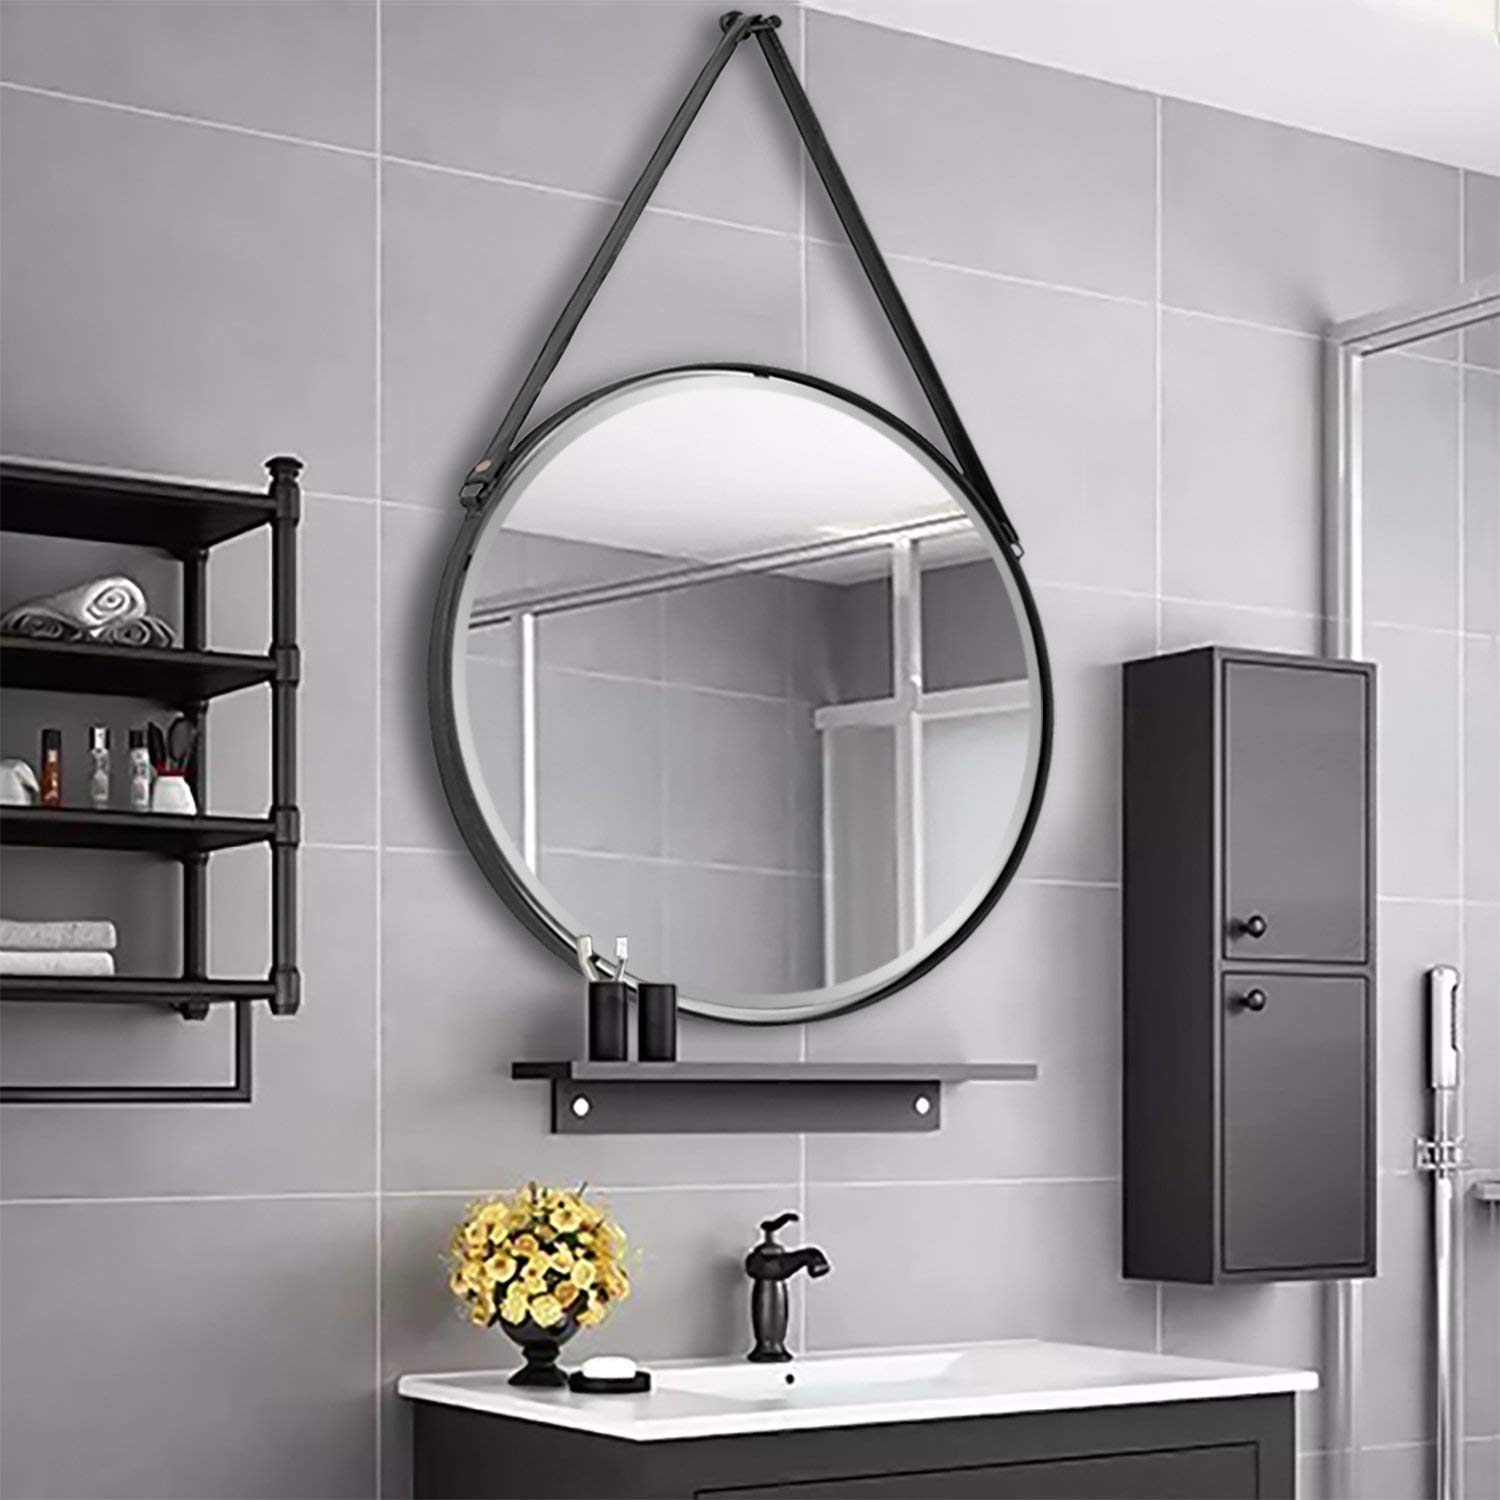 Cheap Small Round Wall Mirror Find Small Round Wall Mirror Deals On Line At Alibaba Com